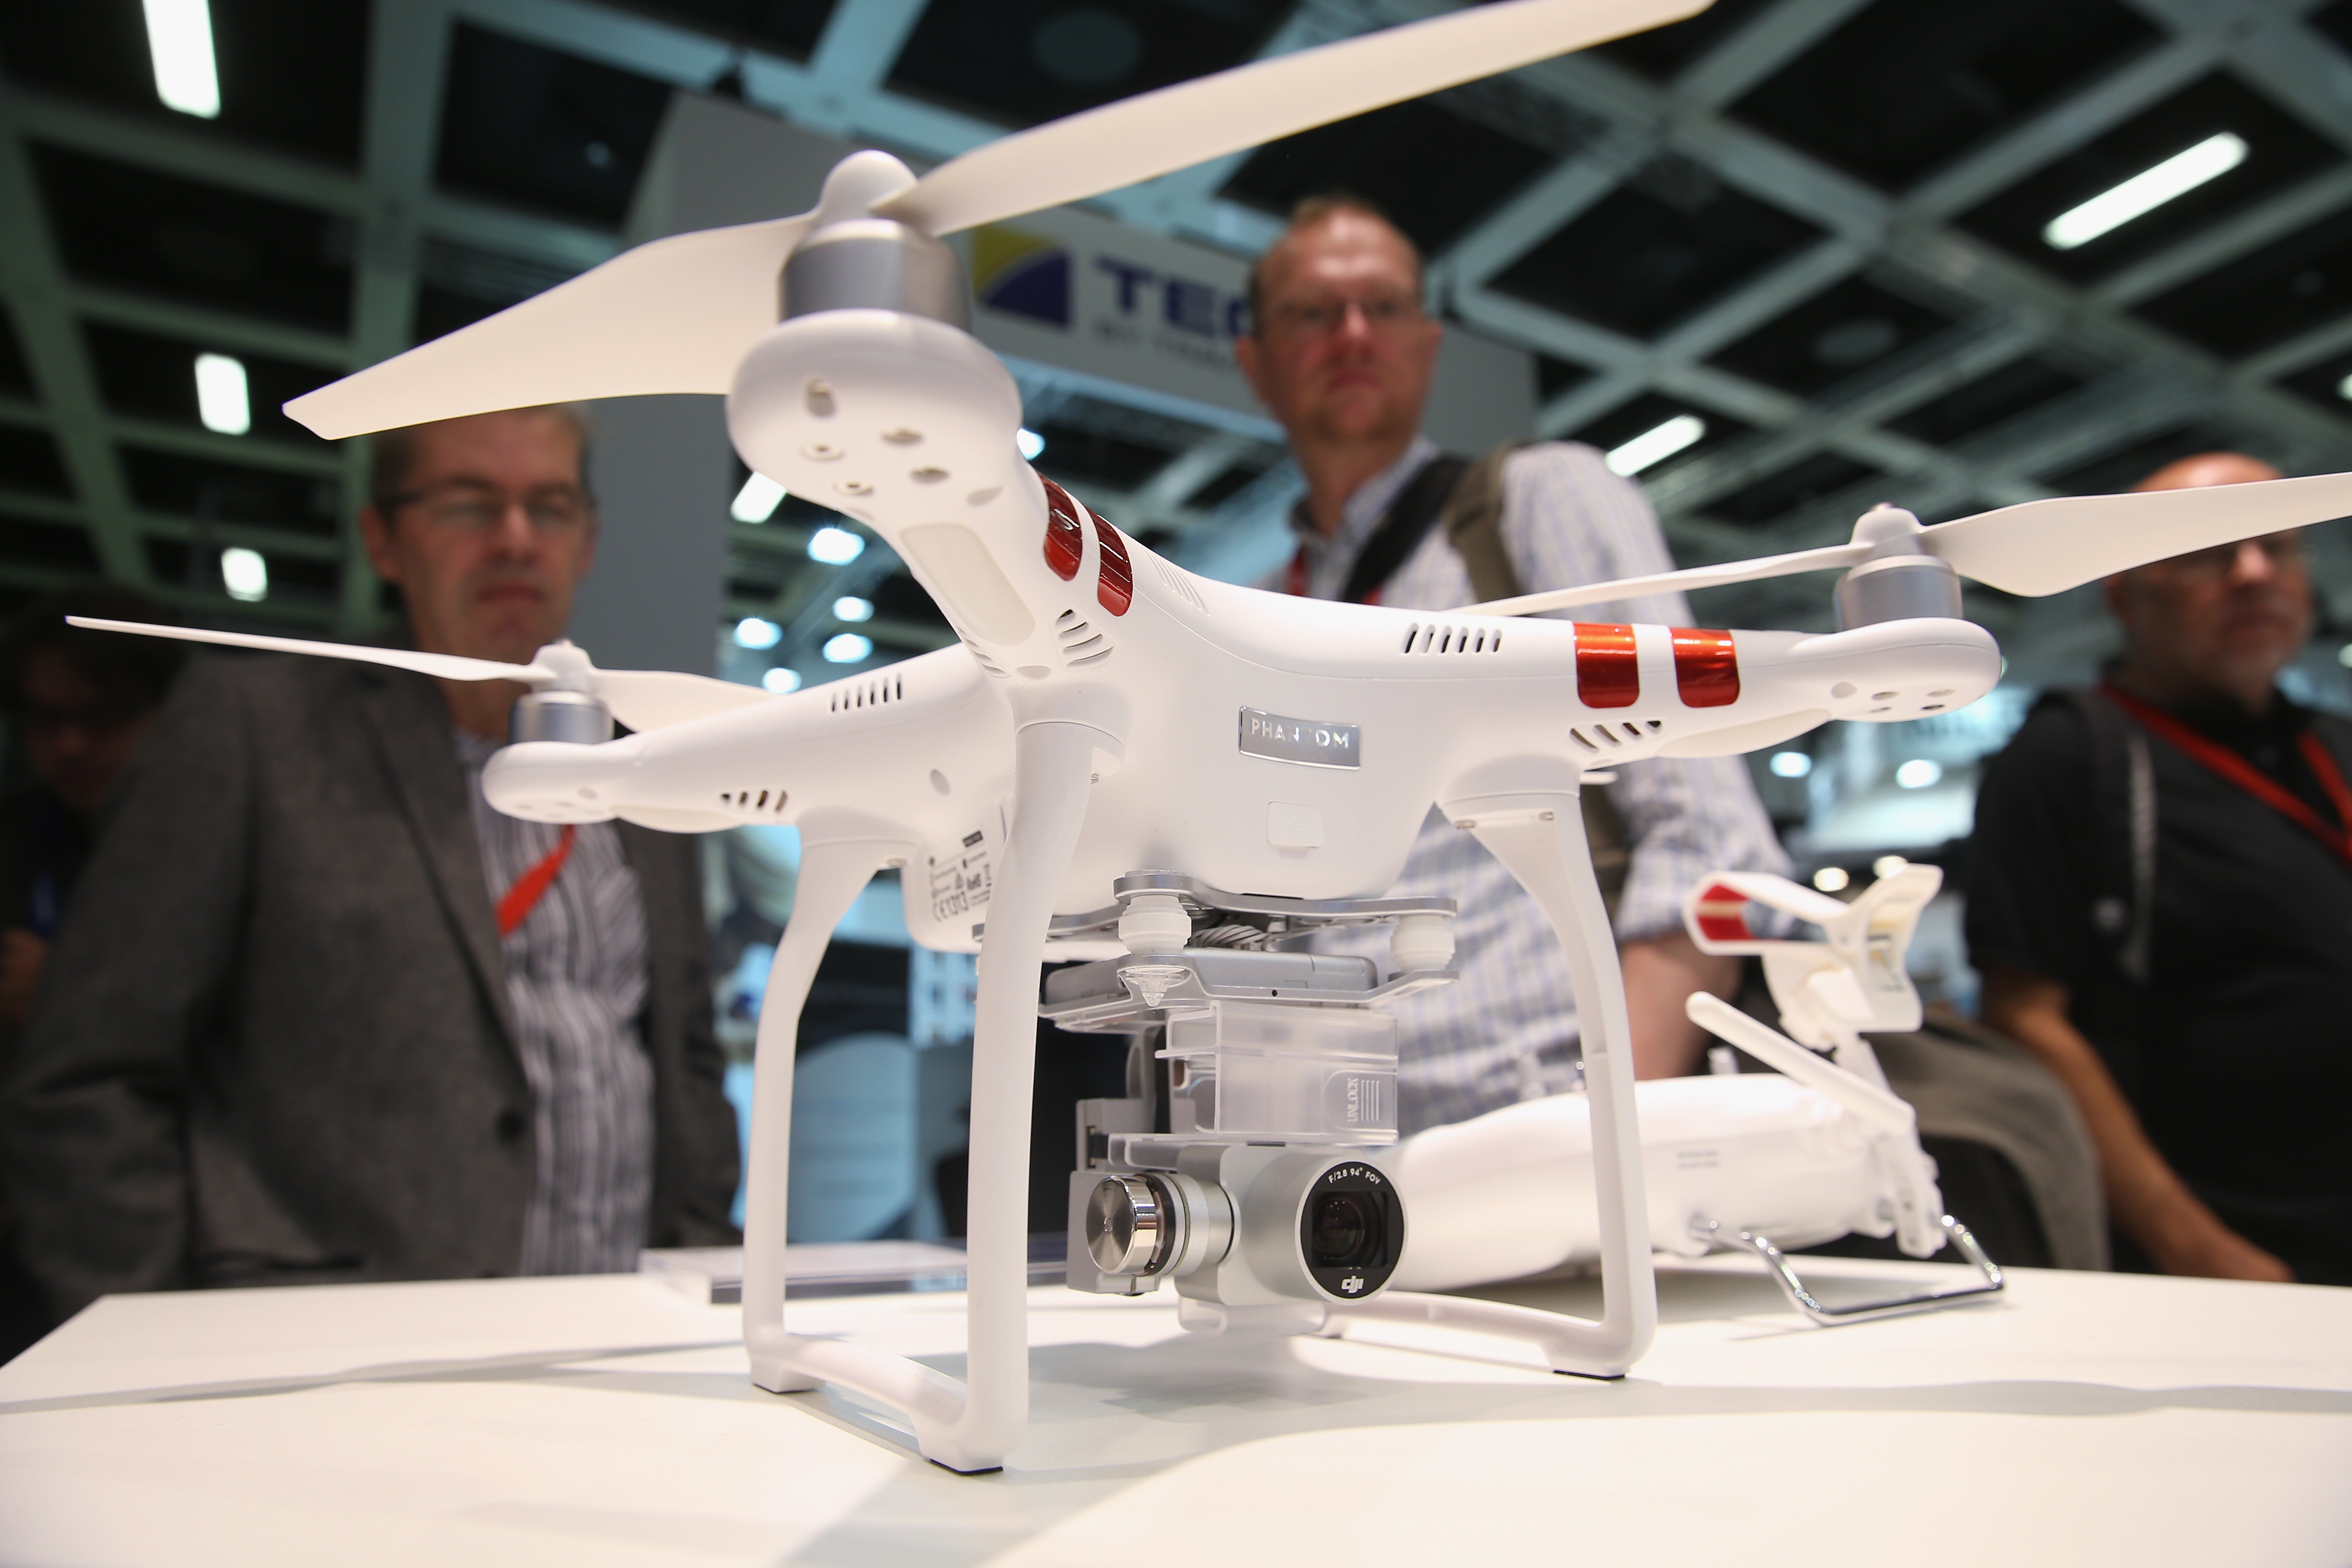 Visitors look at a Phantom 3 Standard quadcopter drone at the DJI stand during a press day at the 2015 IFA consumer electronics and appliances trade fair on September 3, 2015 in Berlin, Germany.